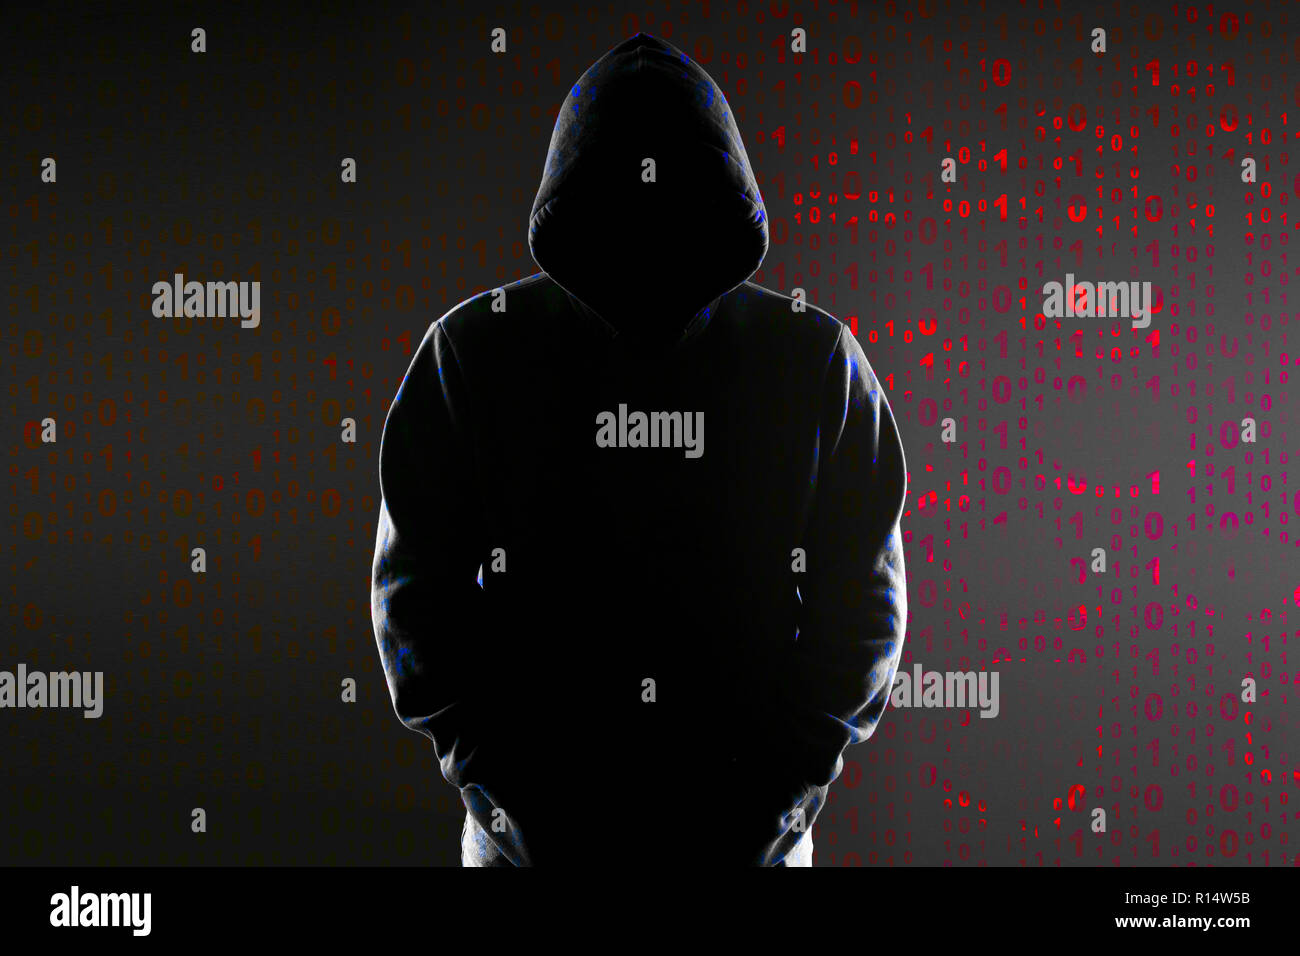 Silhouette Of An Anonymous Hacker In The Hood On The Background Of The Binary Code Stock Photo Alamy